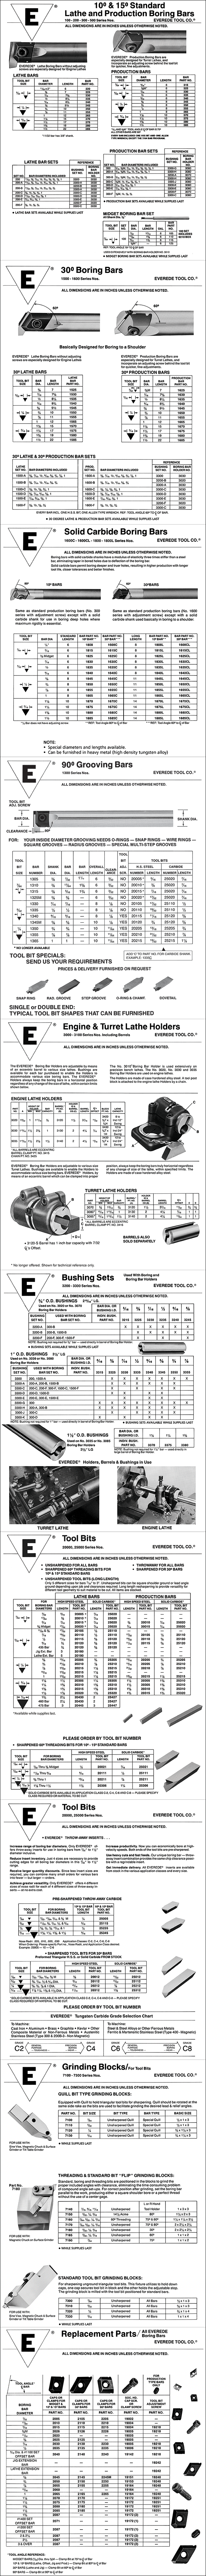 2014 Everede Catalog Production Style Boring Bars, Inserts & Parts List